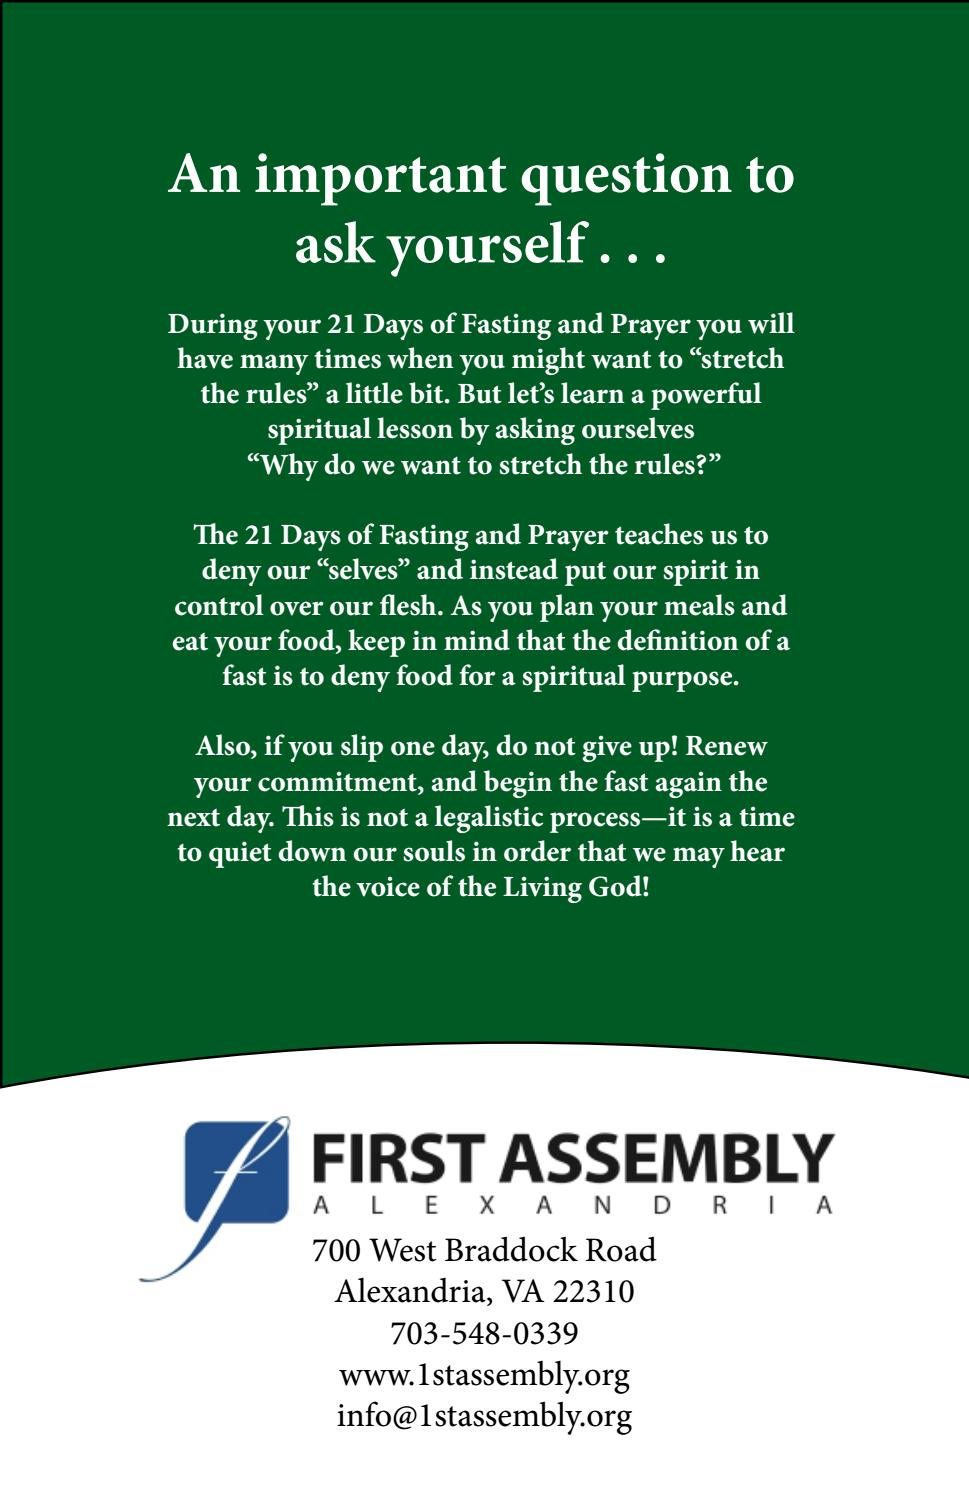 The daniel fast guide & devotional by IgnnieNaschuo - issuu